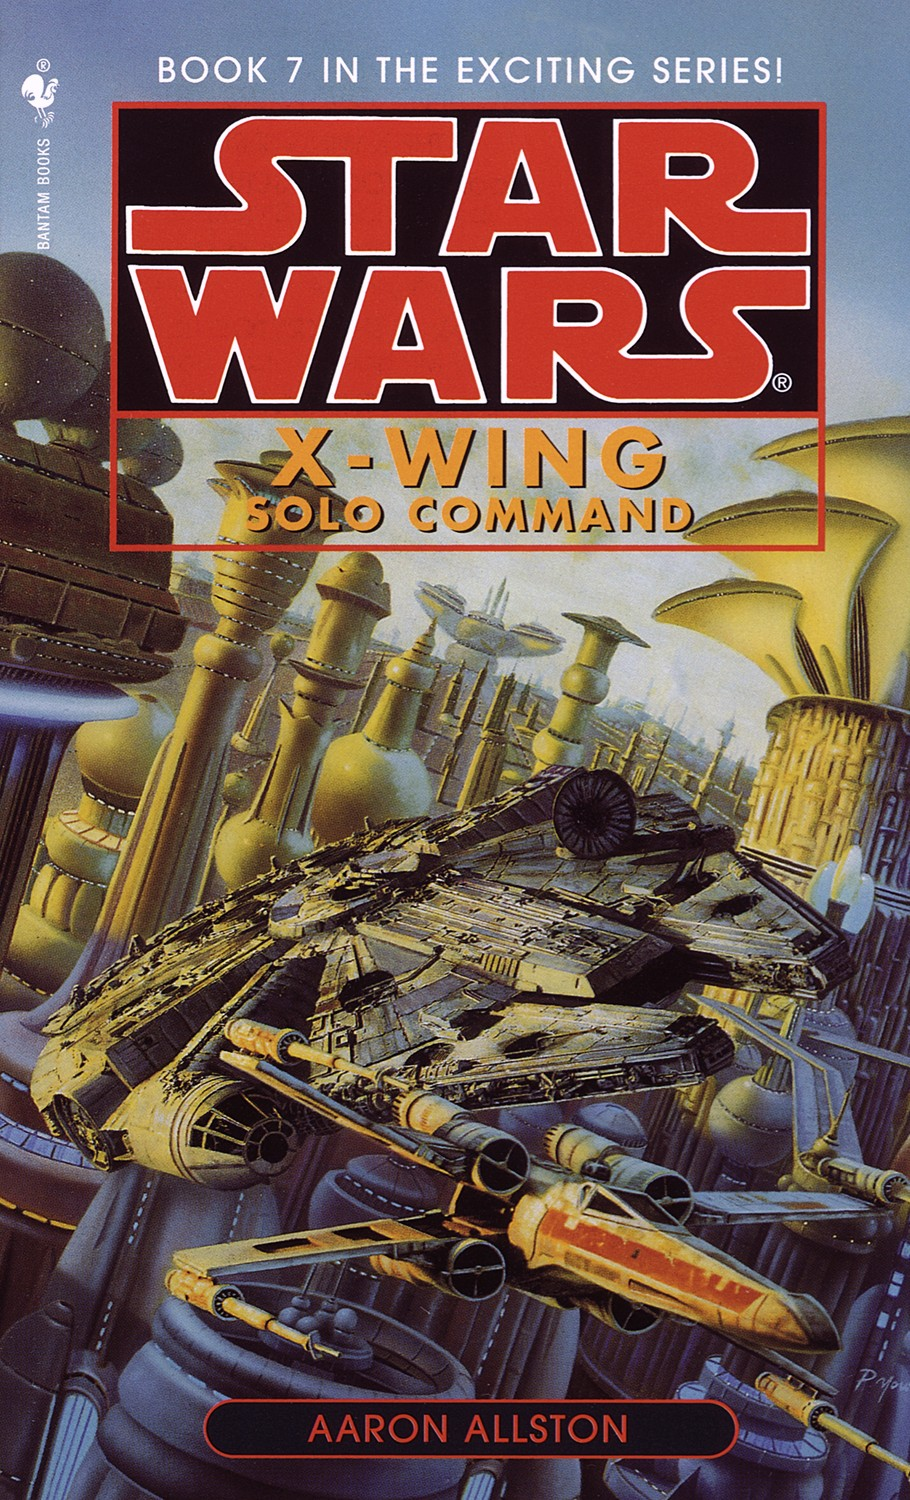 PART 17     Solo Command  (1999)  by Aaron Allston